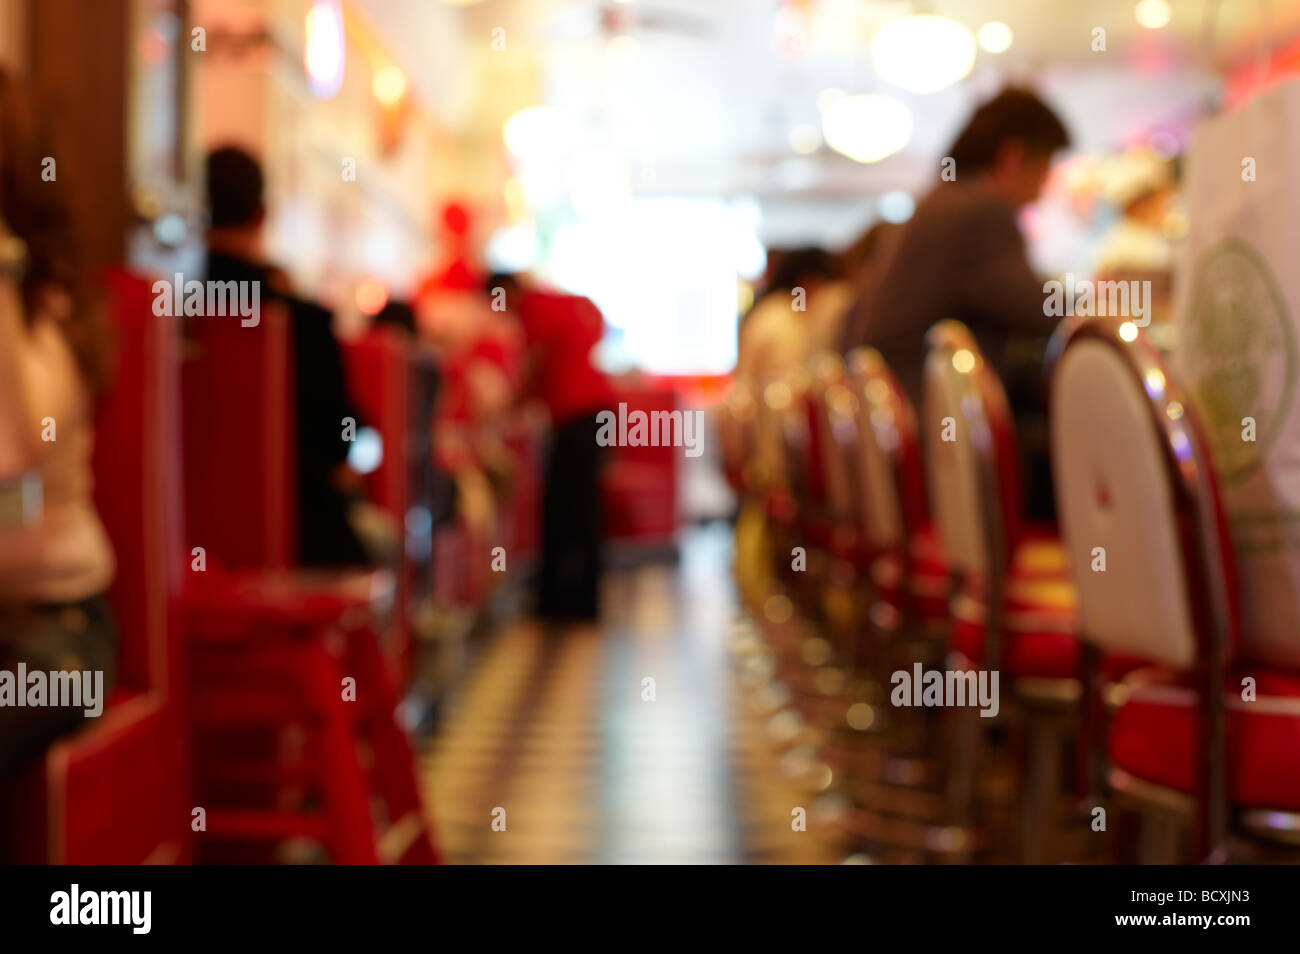 Deliberately out of focus image of an American style Diner - Stock Image